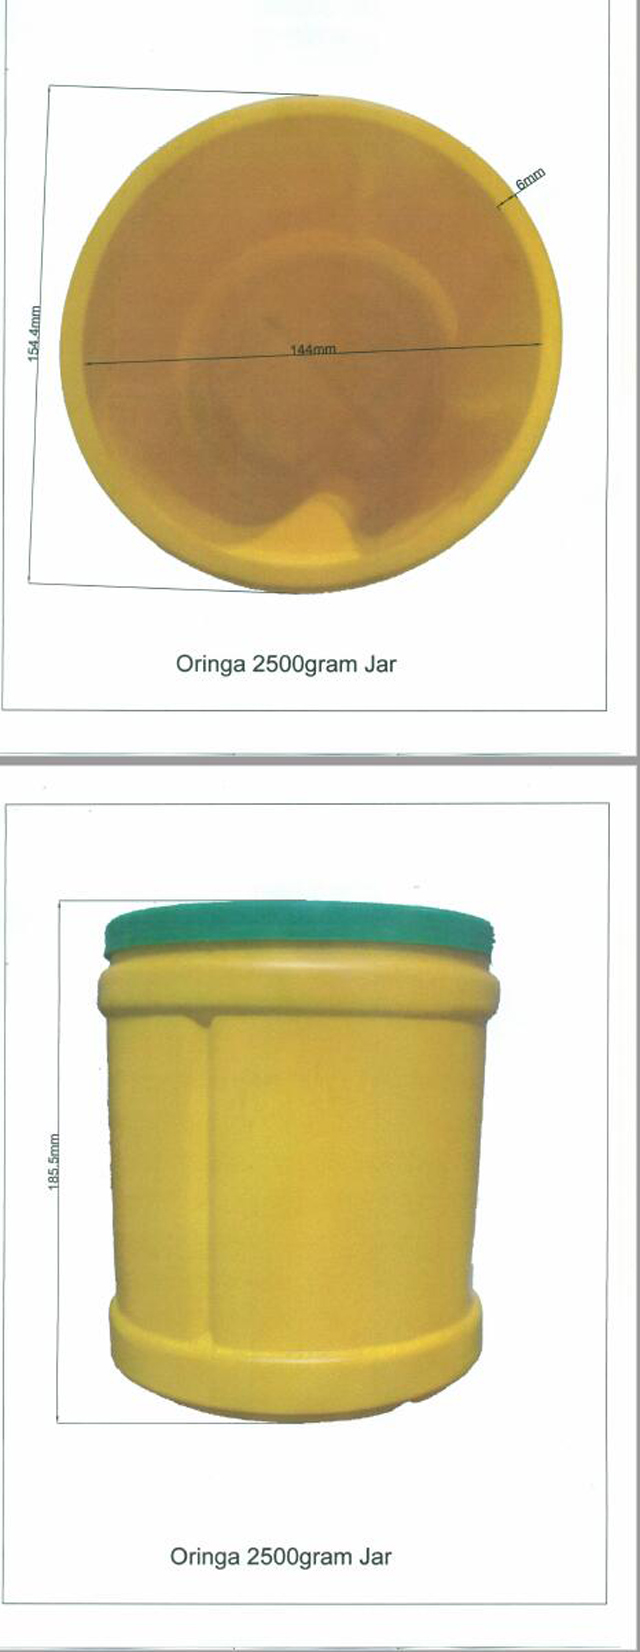 jars diameter calibrator.jpg